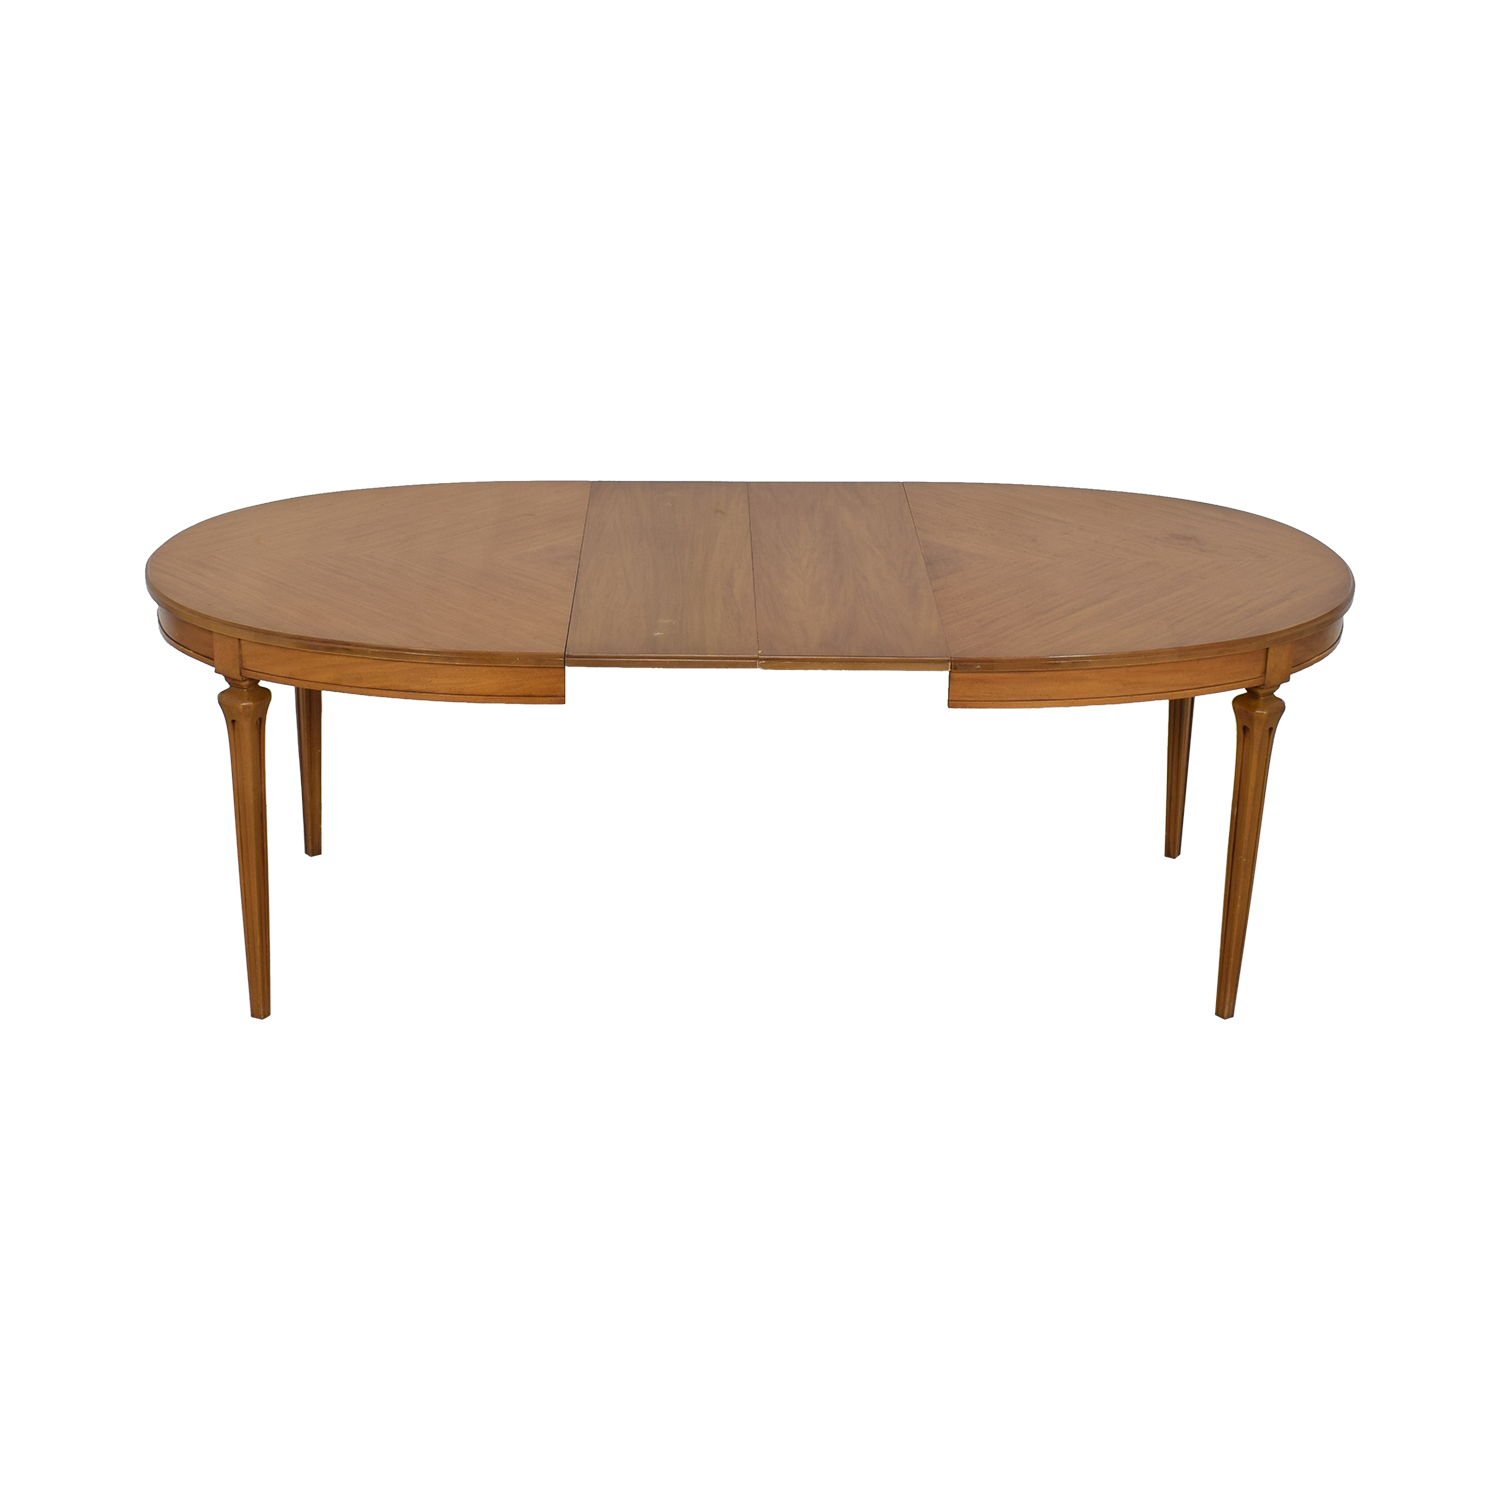 Extendable Oval Dining Table for sale